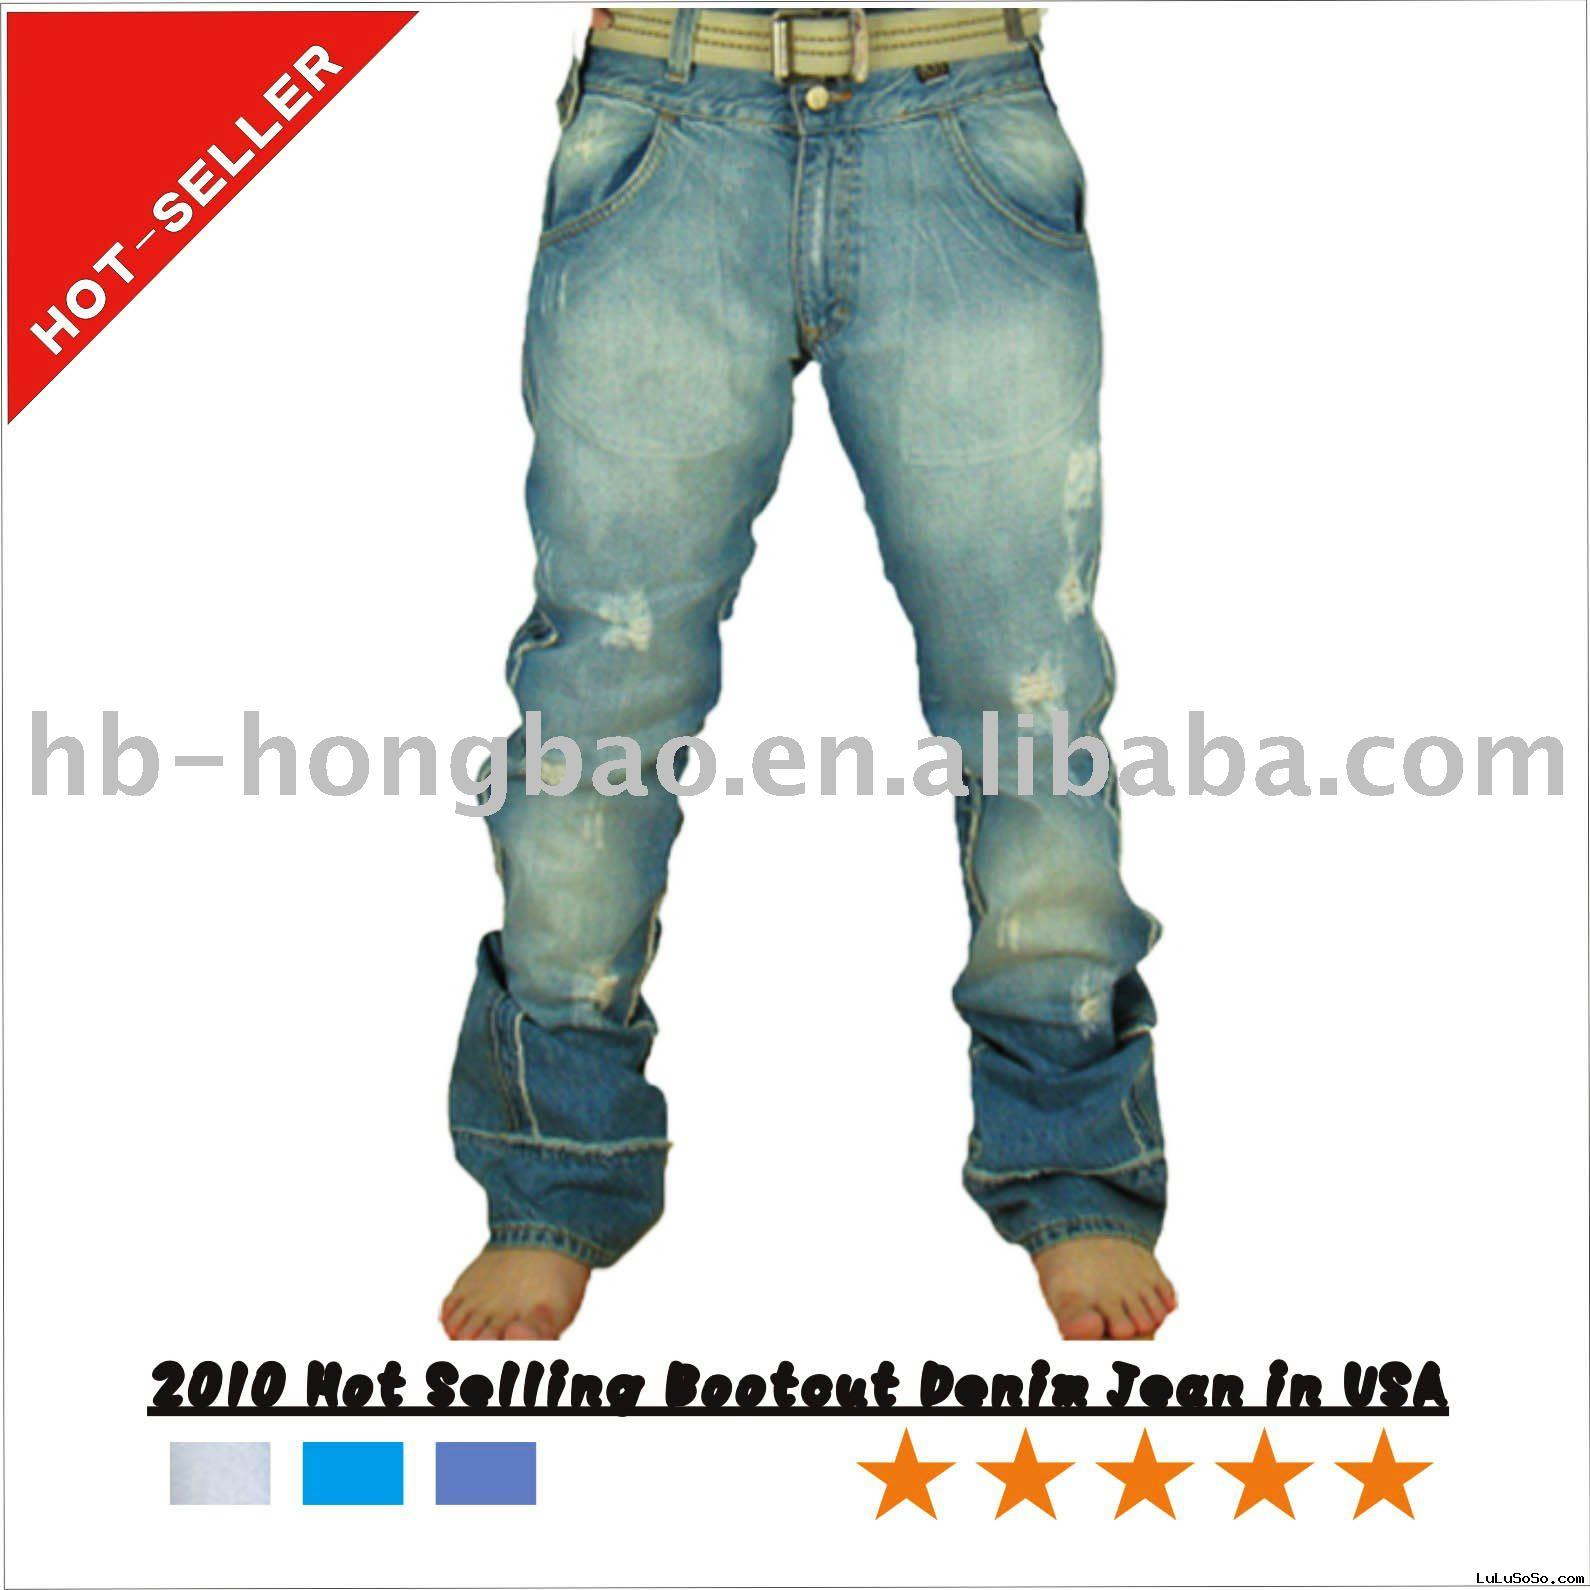 2010 Hot selling Bootcut Denim Pant in USA